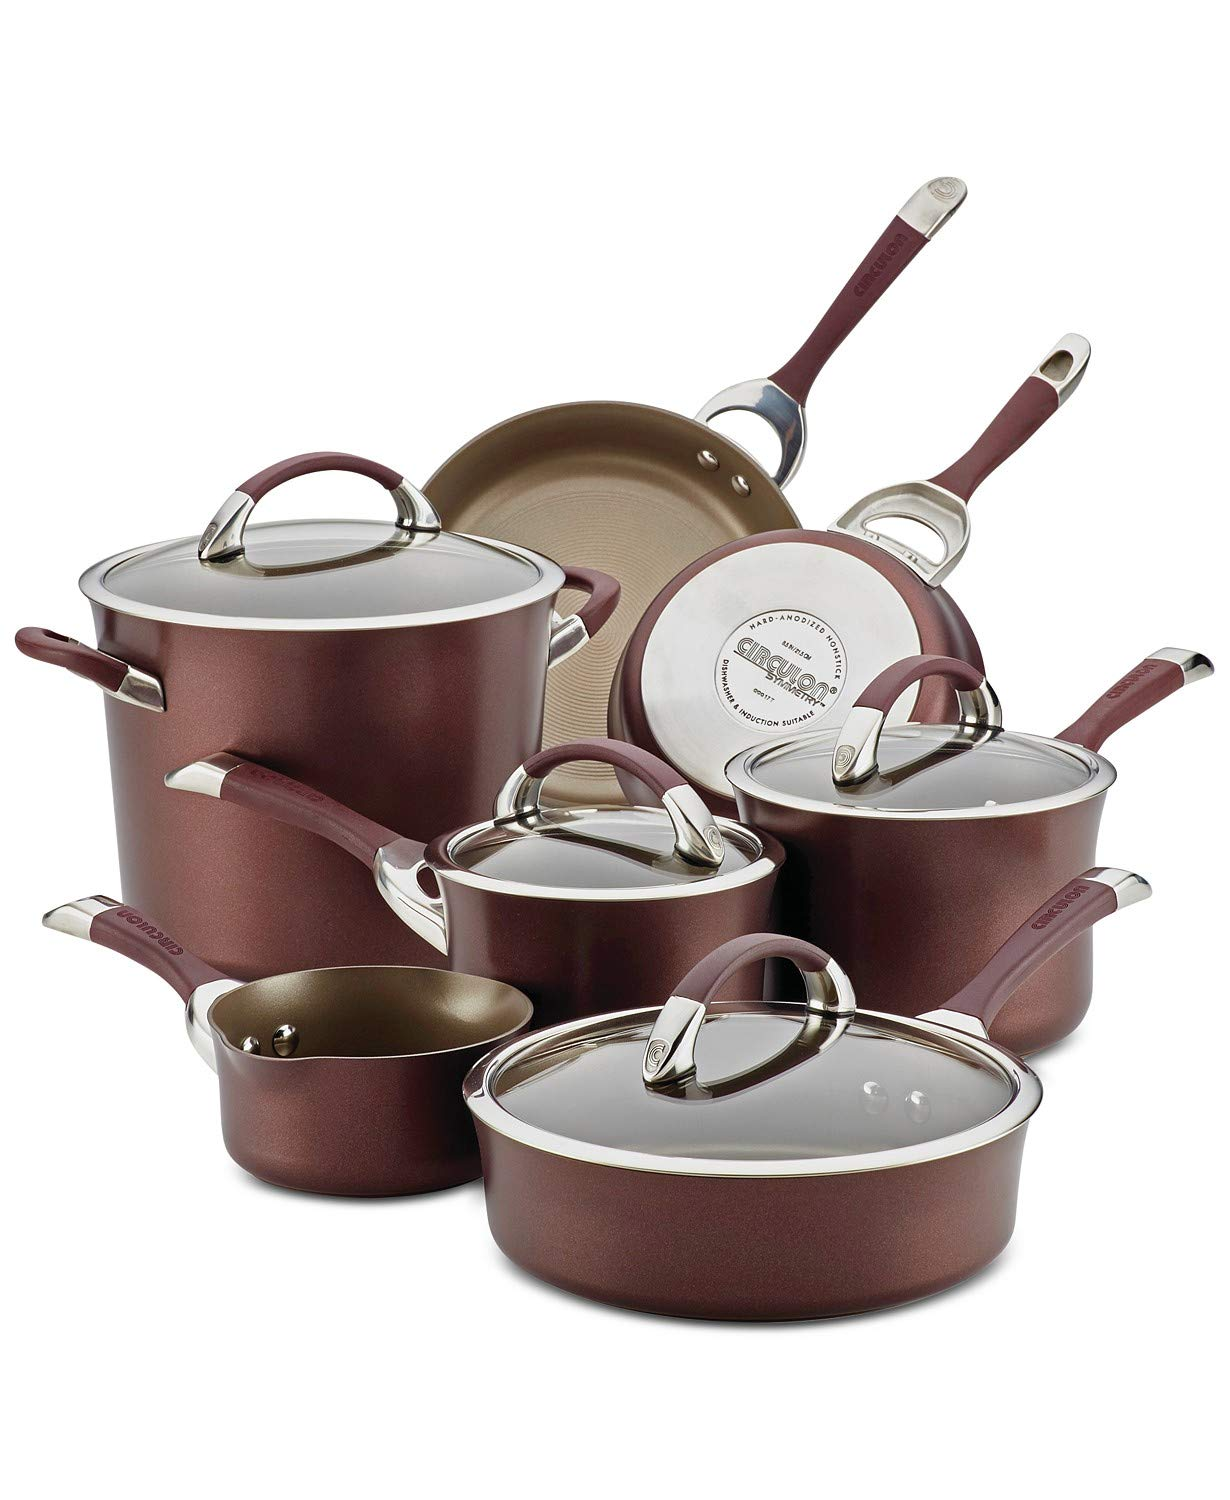 Circulon Symmetry Hard-Anodized Nonstick 11-Piece Cookware Set (Merlot)